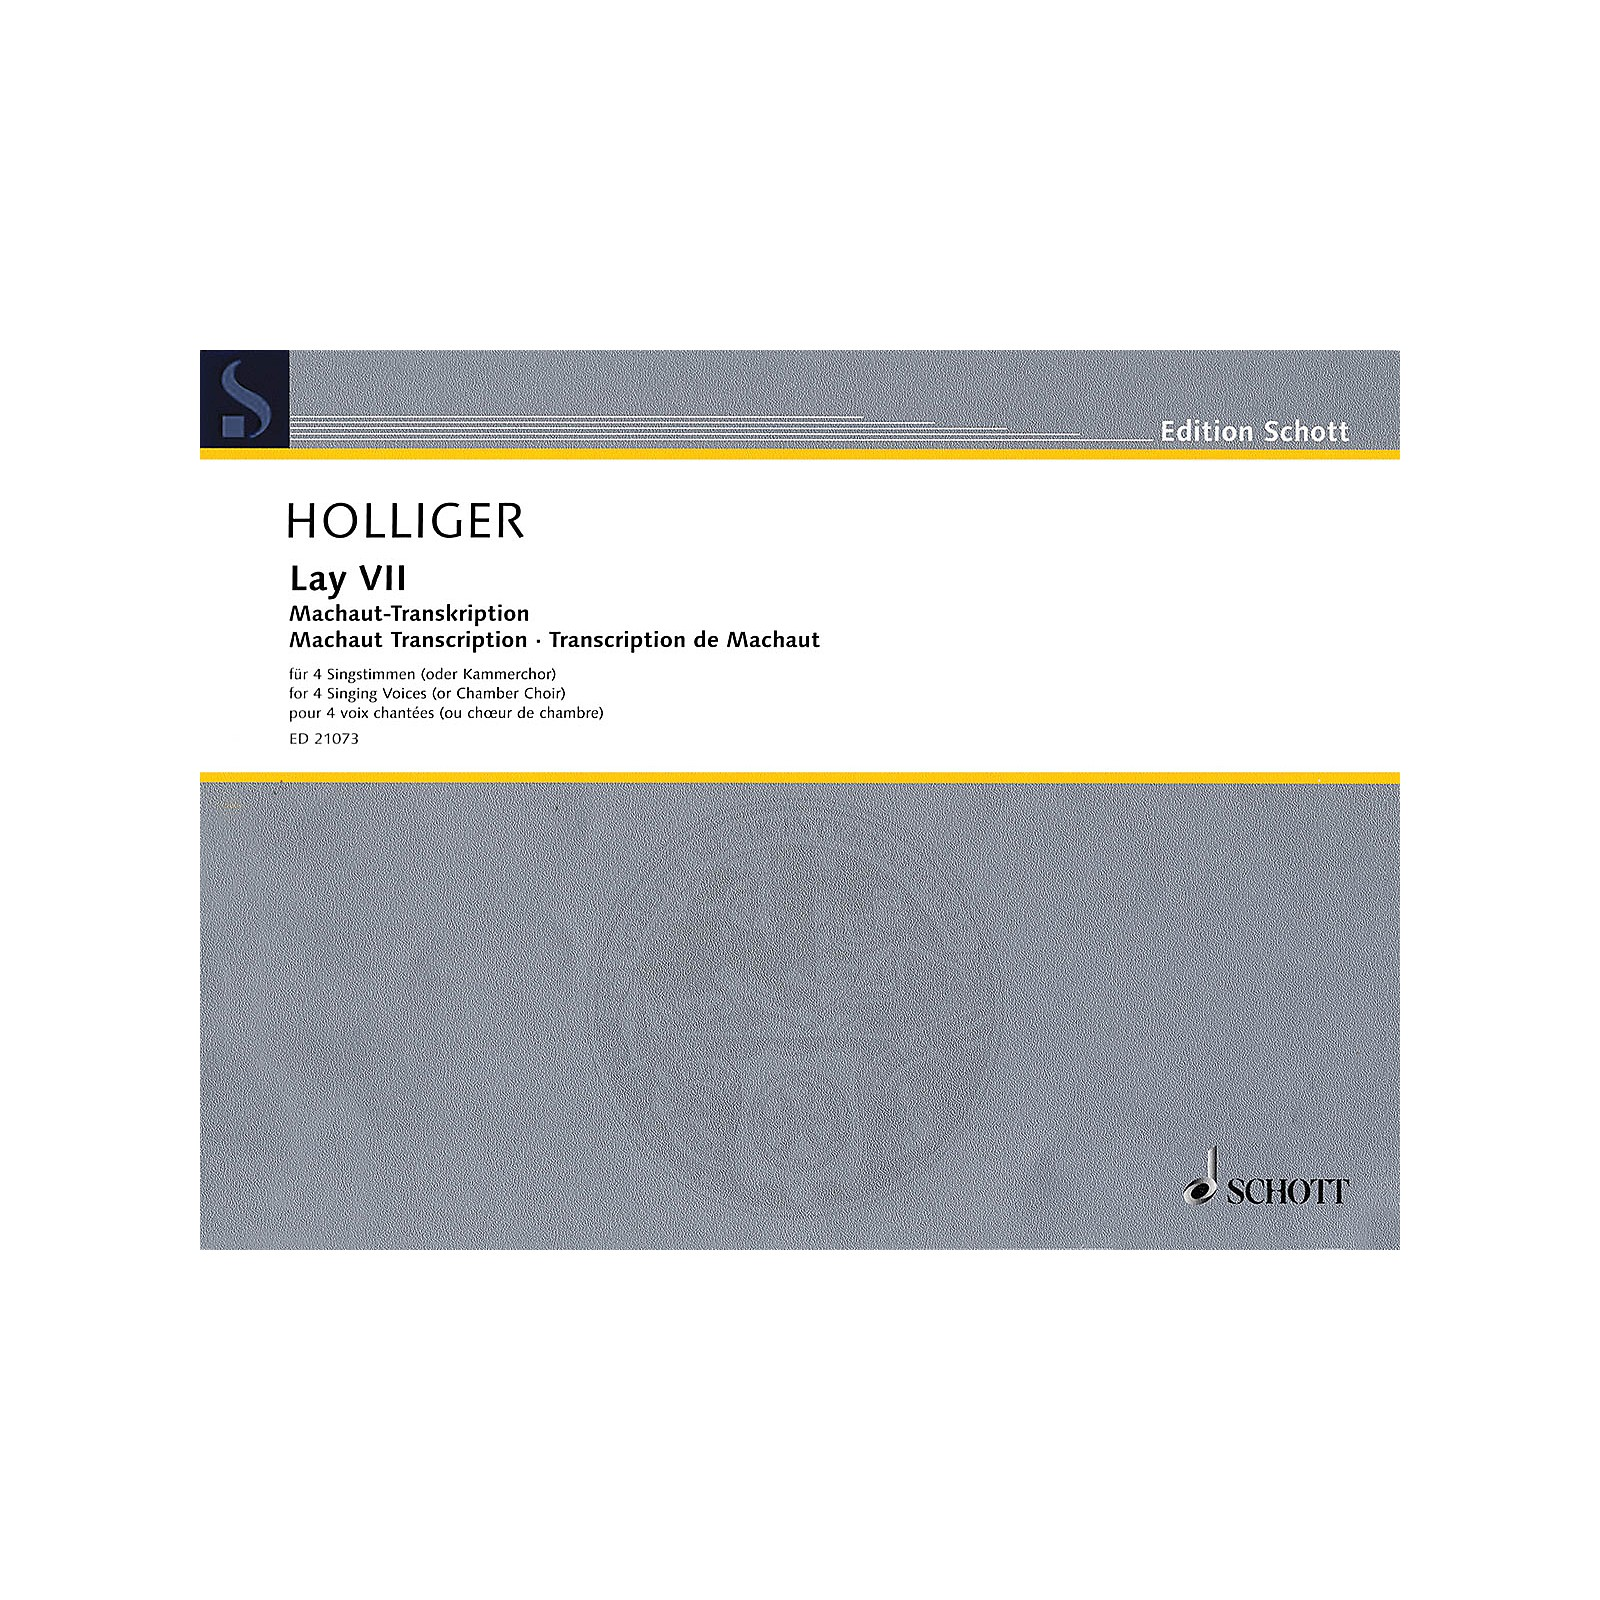 Schott Lay VII (Four Singing Voices (or Chamber Choir) Machaut Transcription) Composed by Heinz Holliger